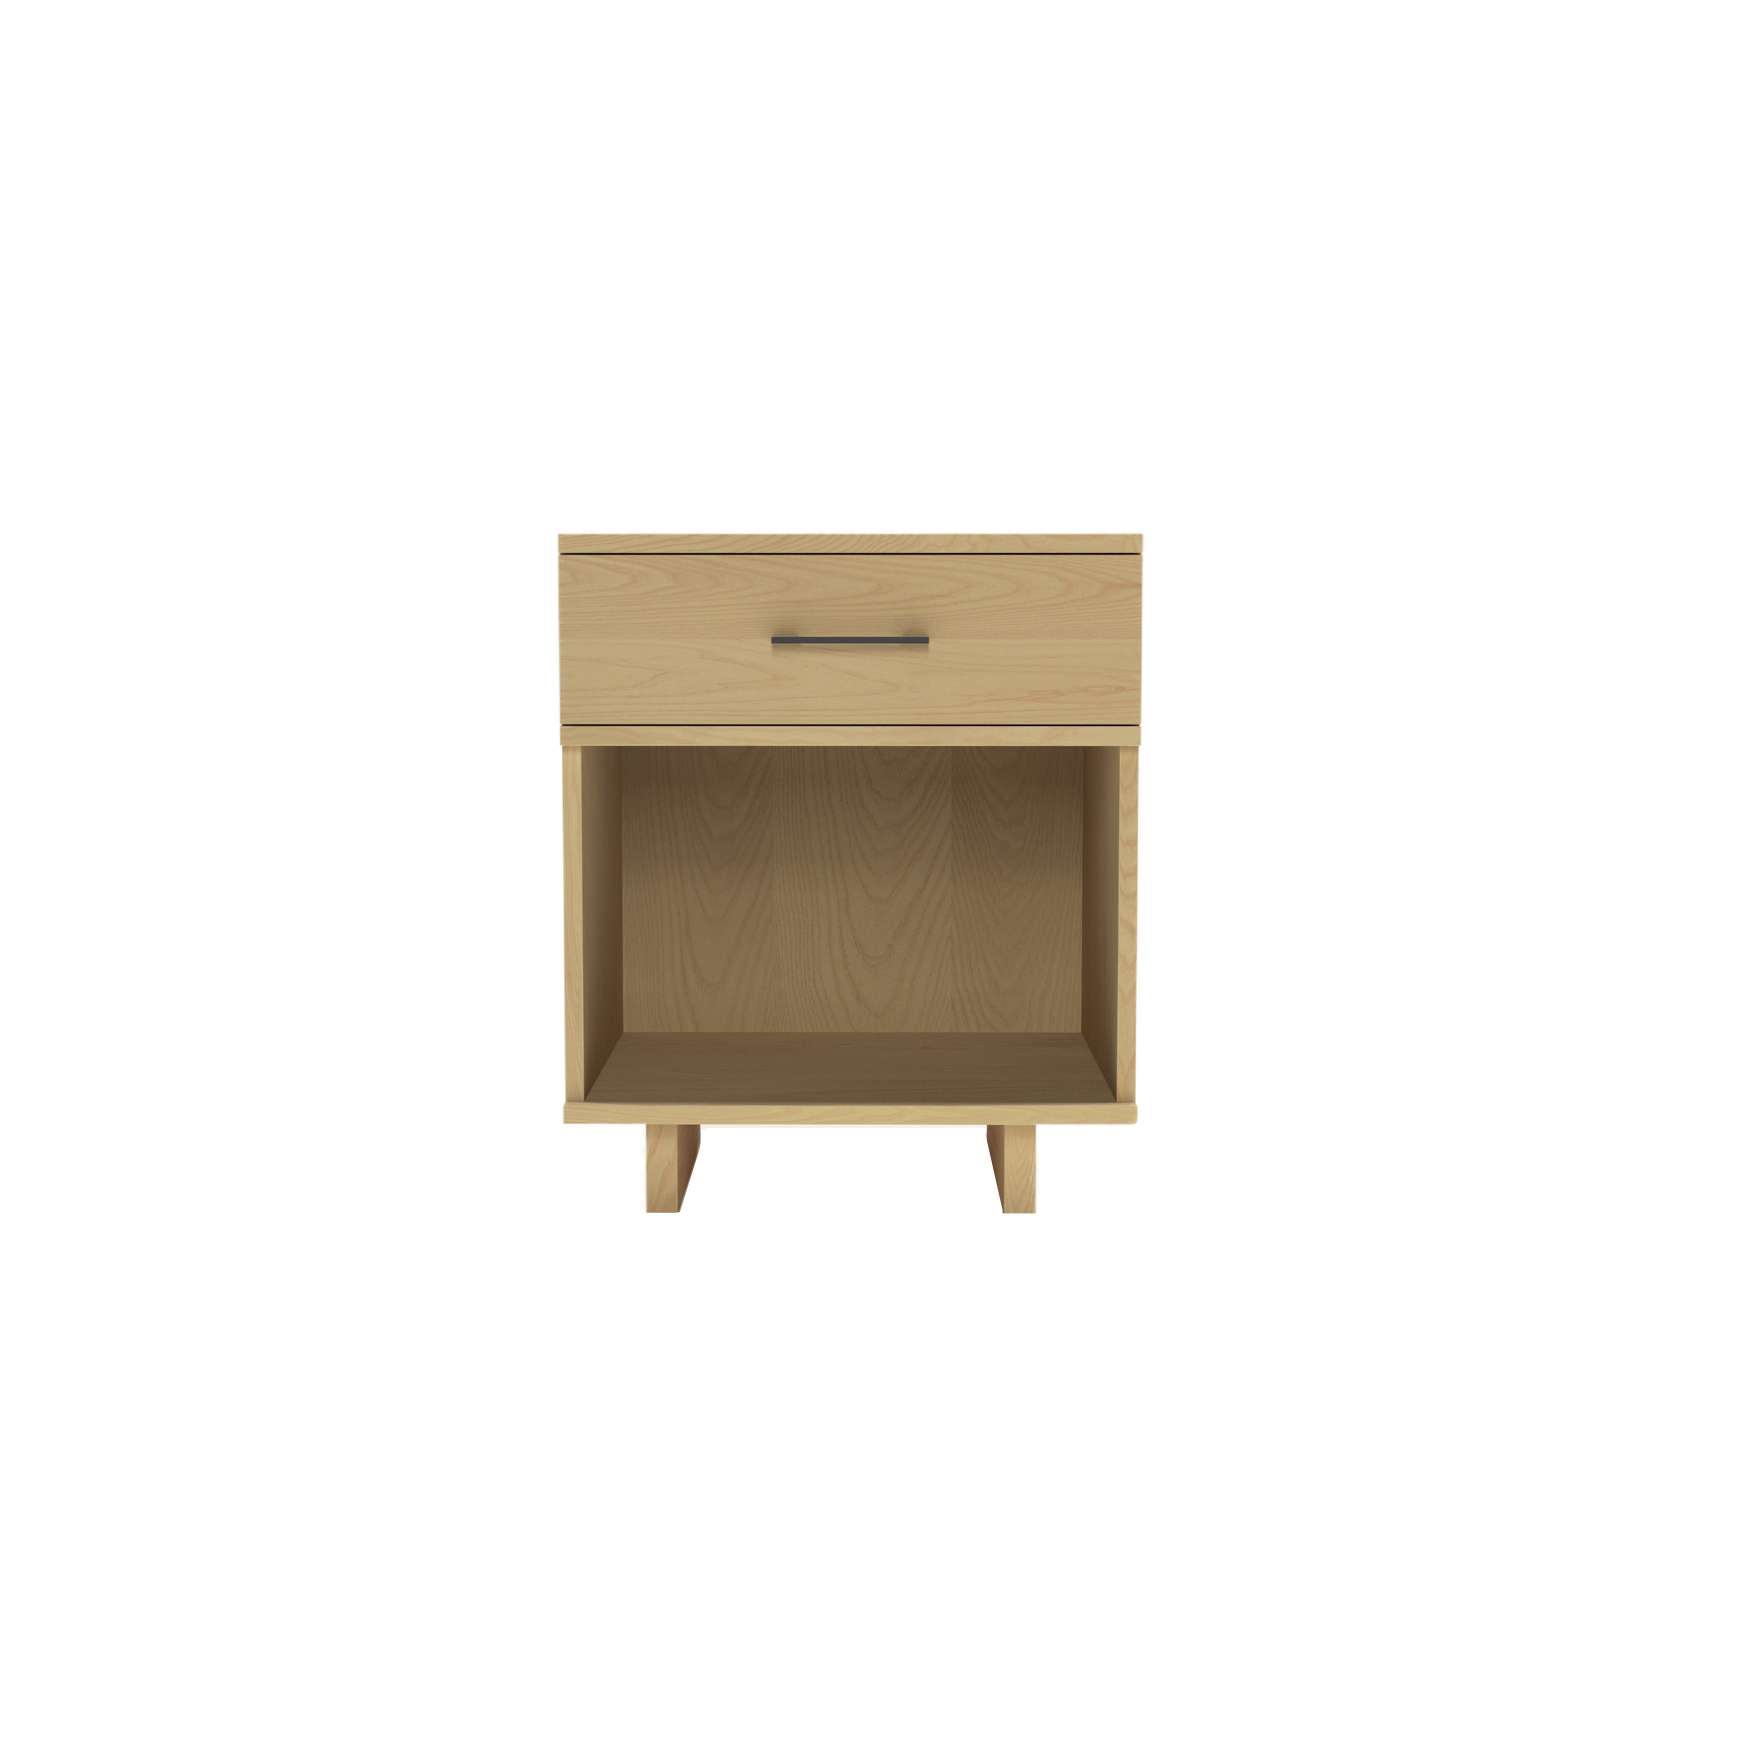 Series 252 Small Bedside Table – Ash